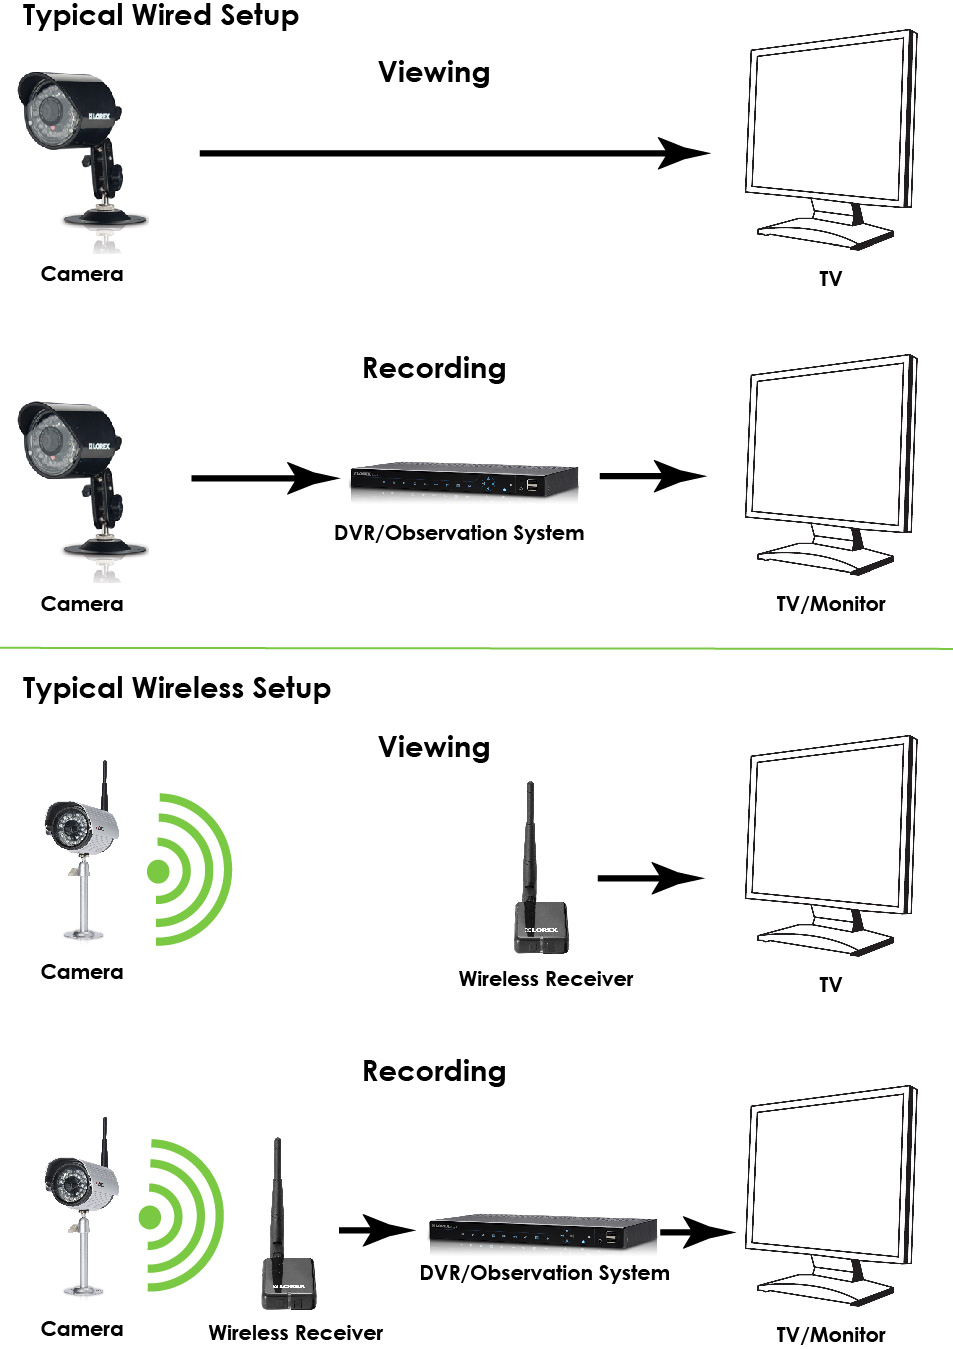 [YK_4625] Diagram Of A Cctv System Enabling Long Distance